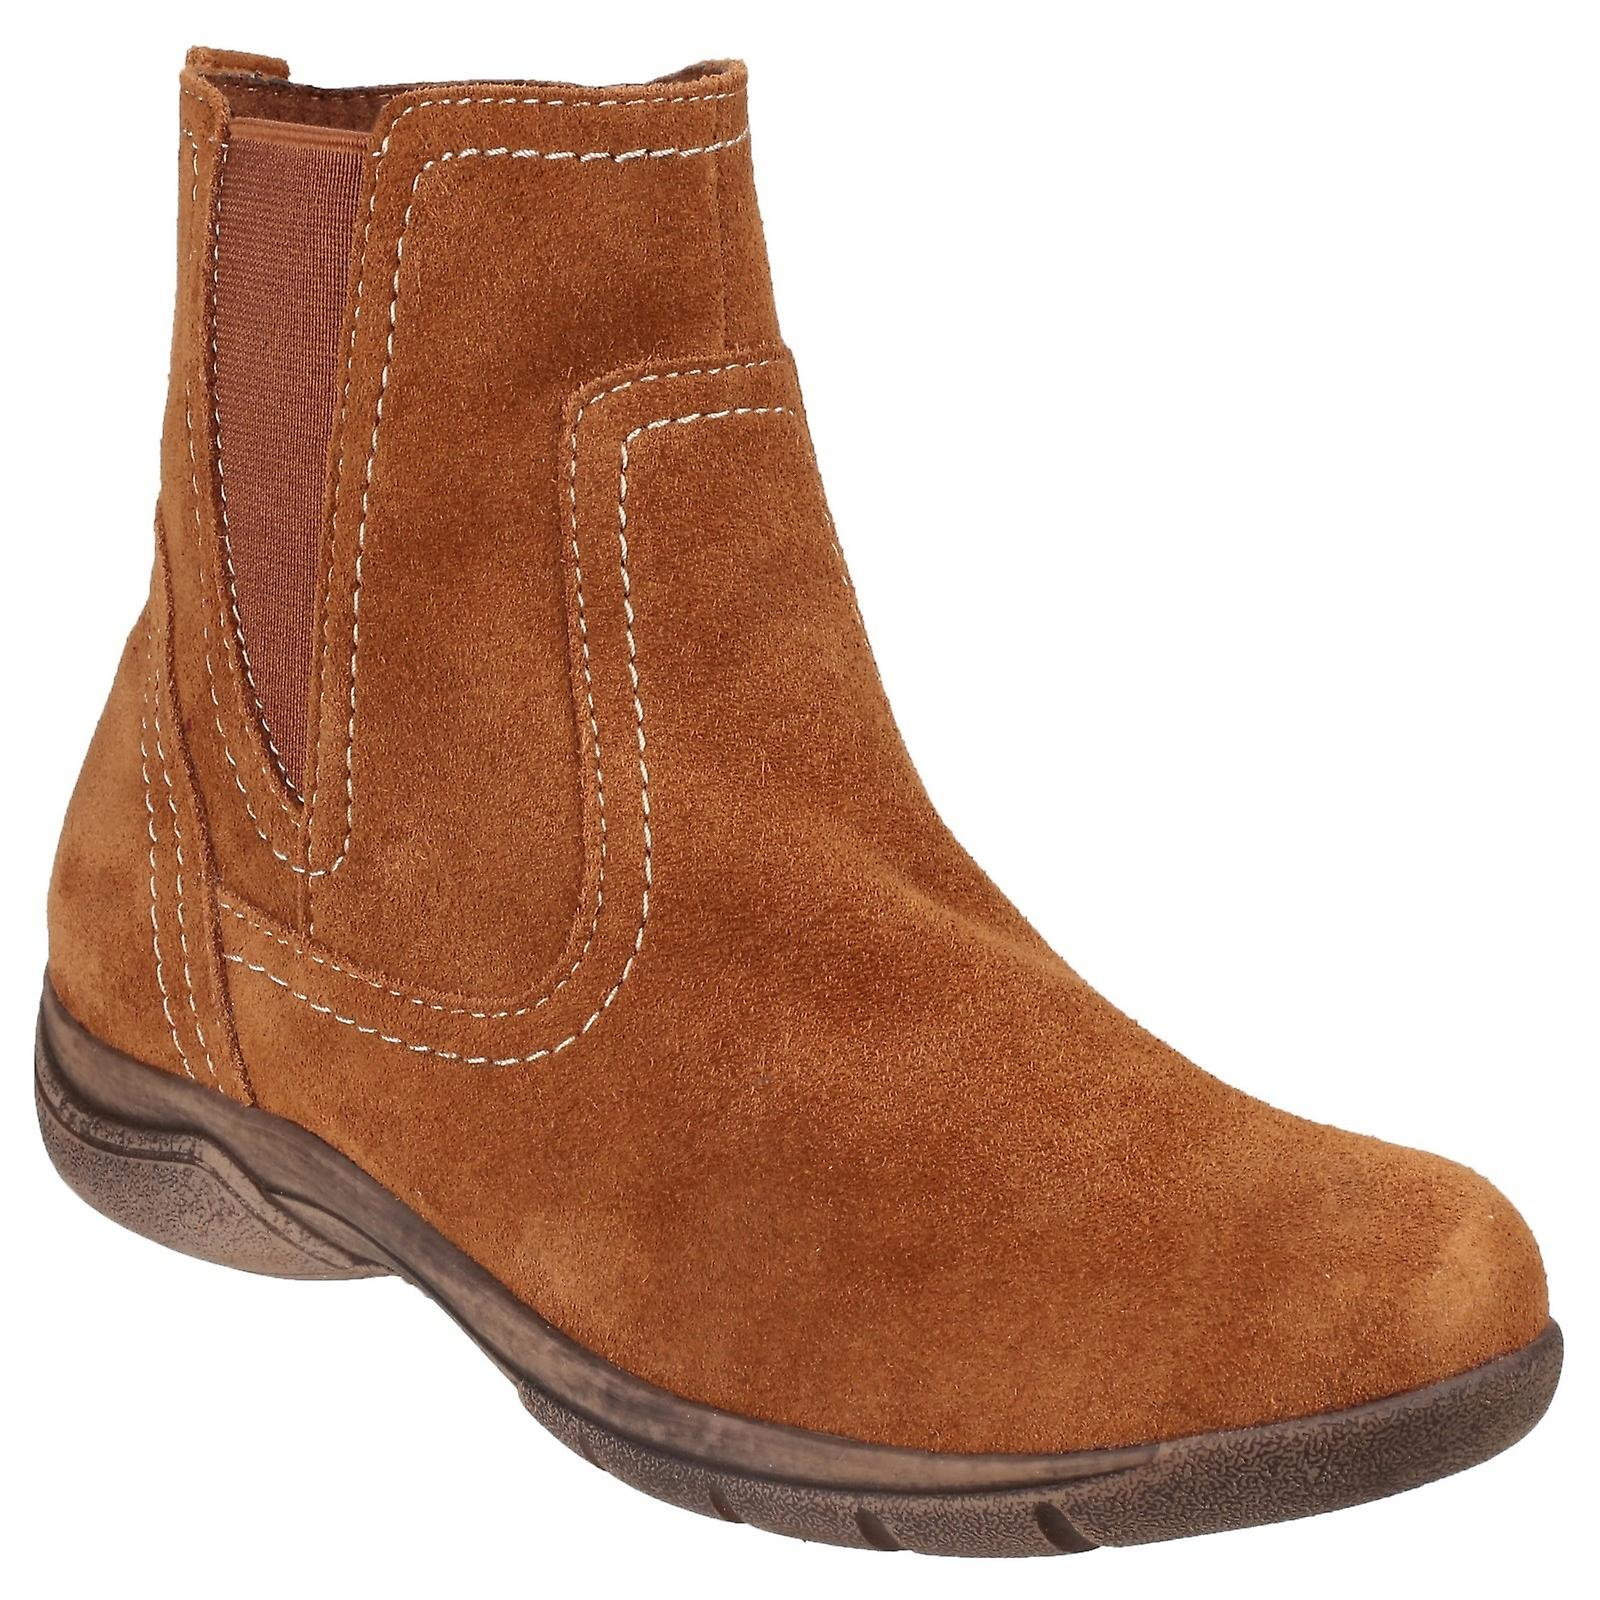 Fleet & Foster Womens/Ladies Malmo Slip On Ankle Boots